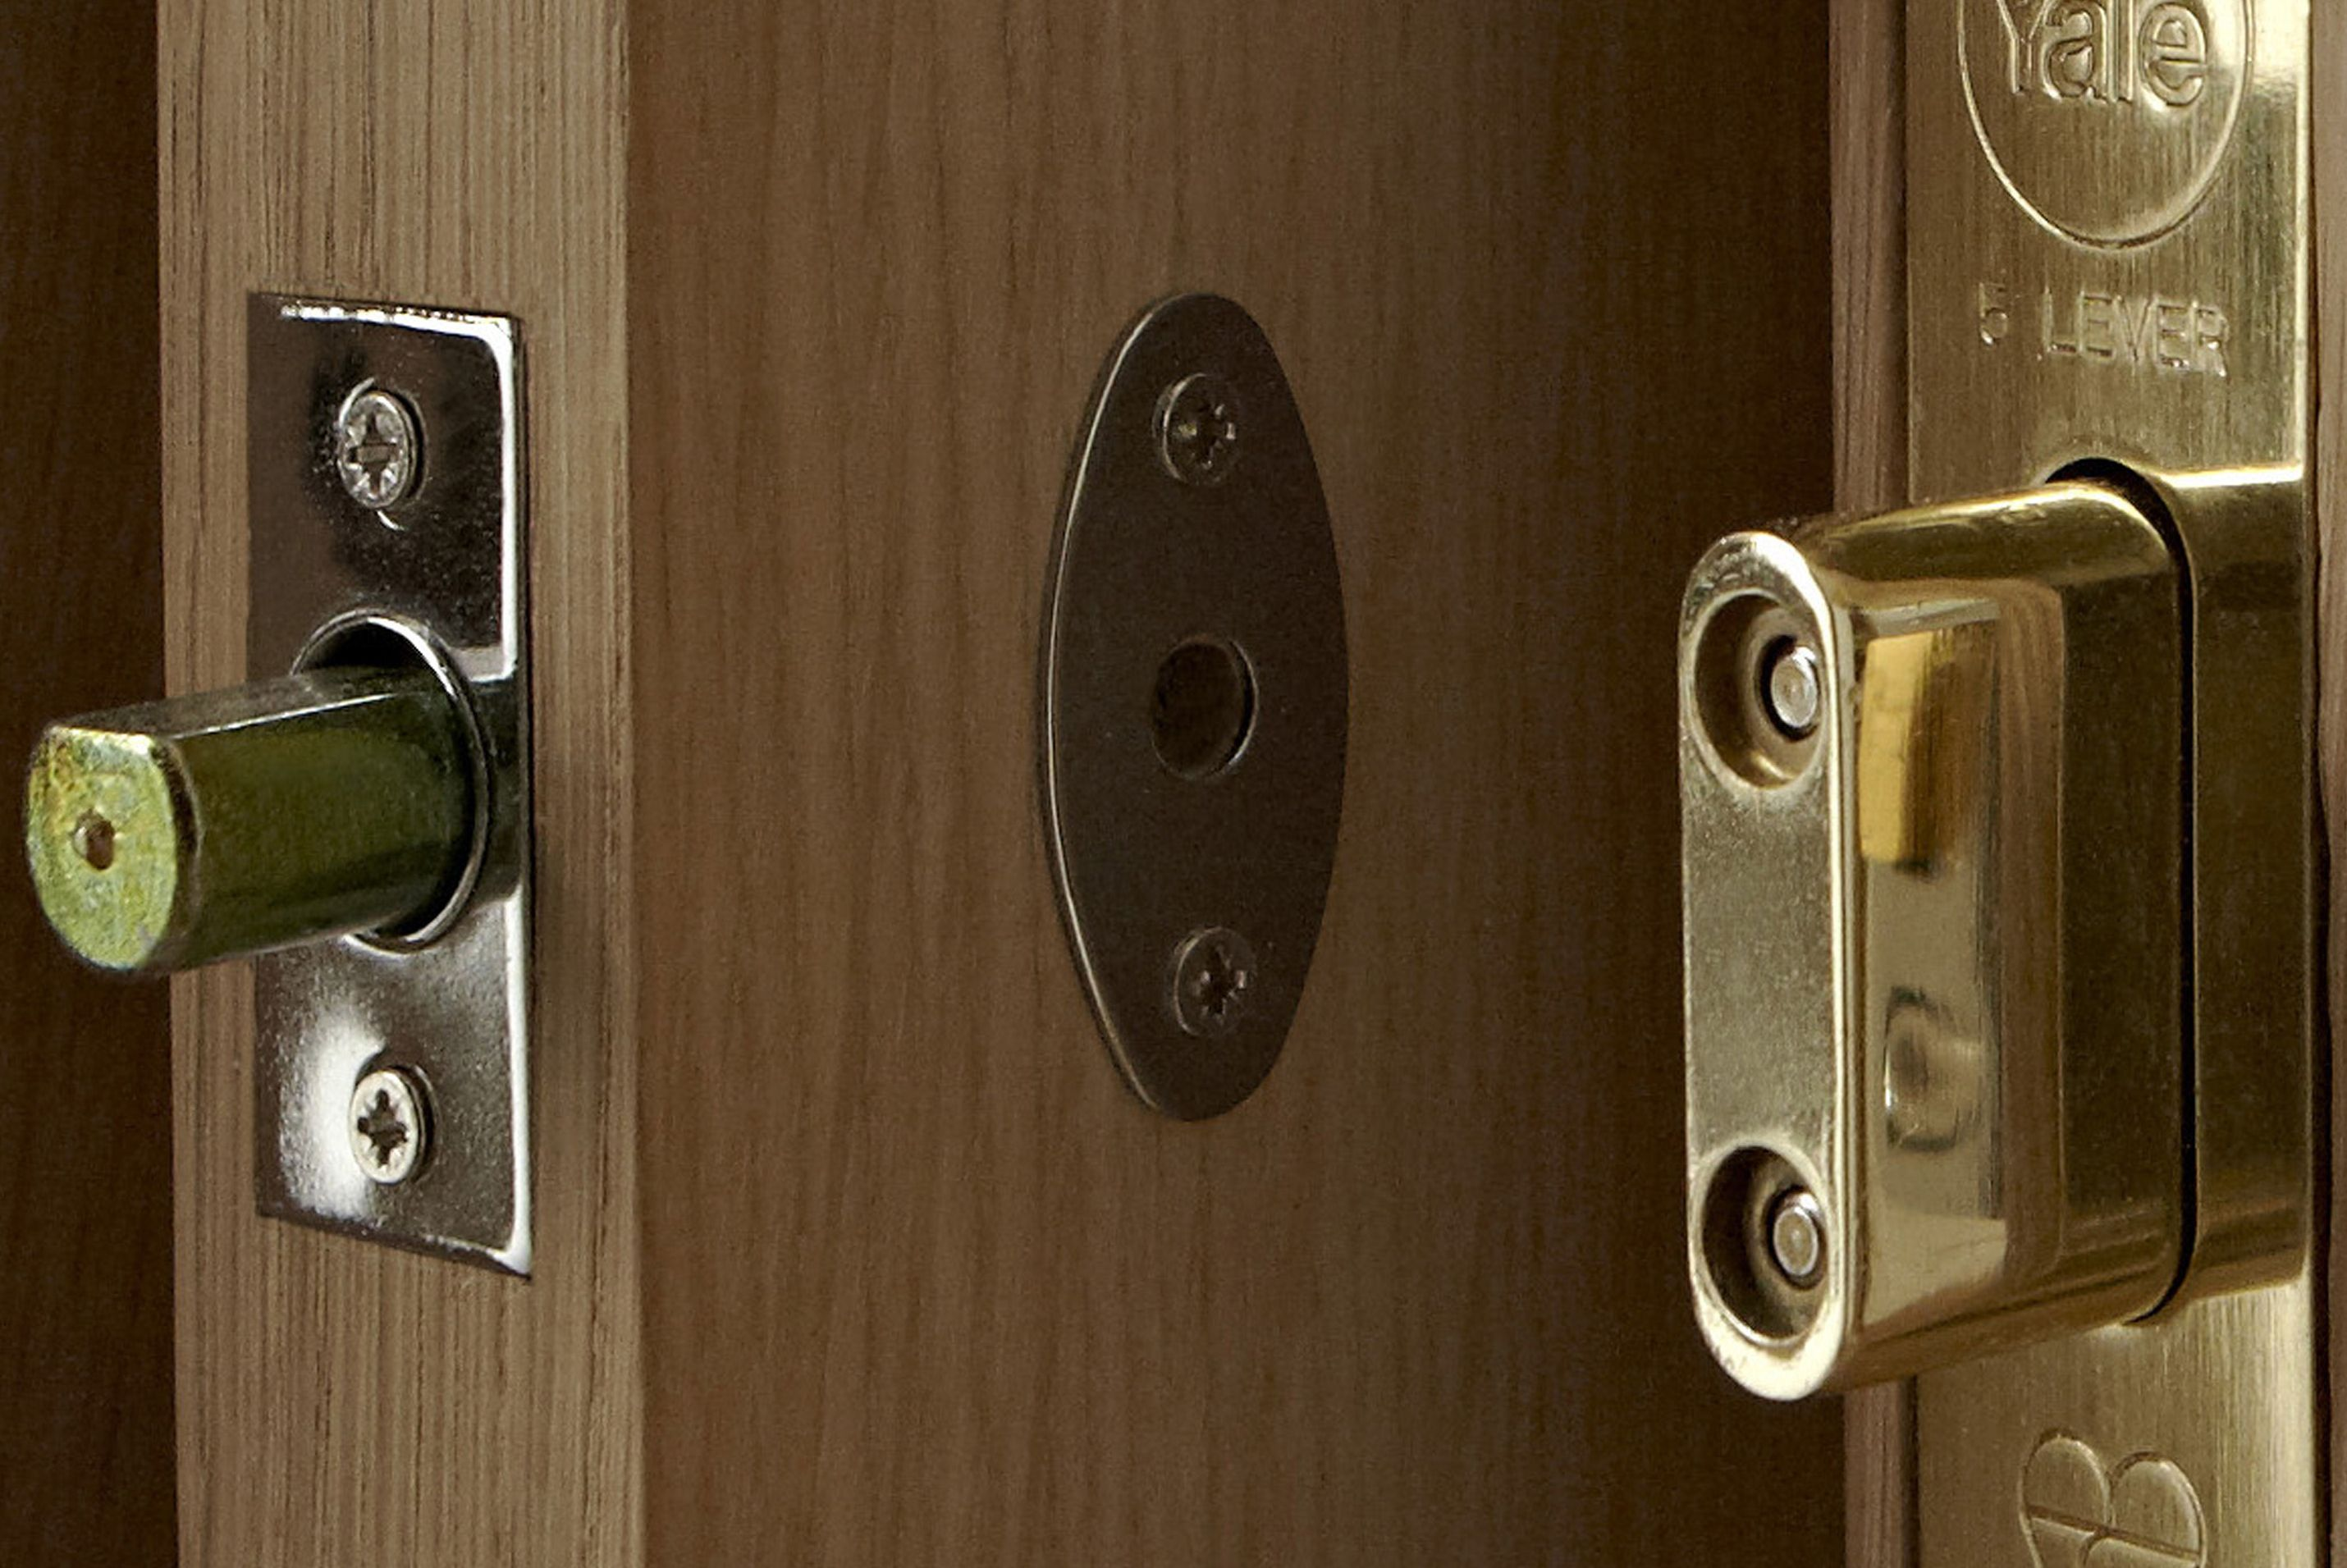 Door & window locks buying guide | Ideas & Advice | DIY at B&Q